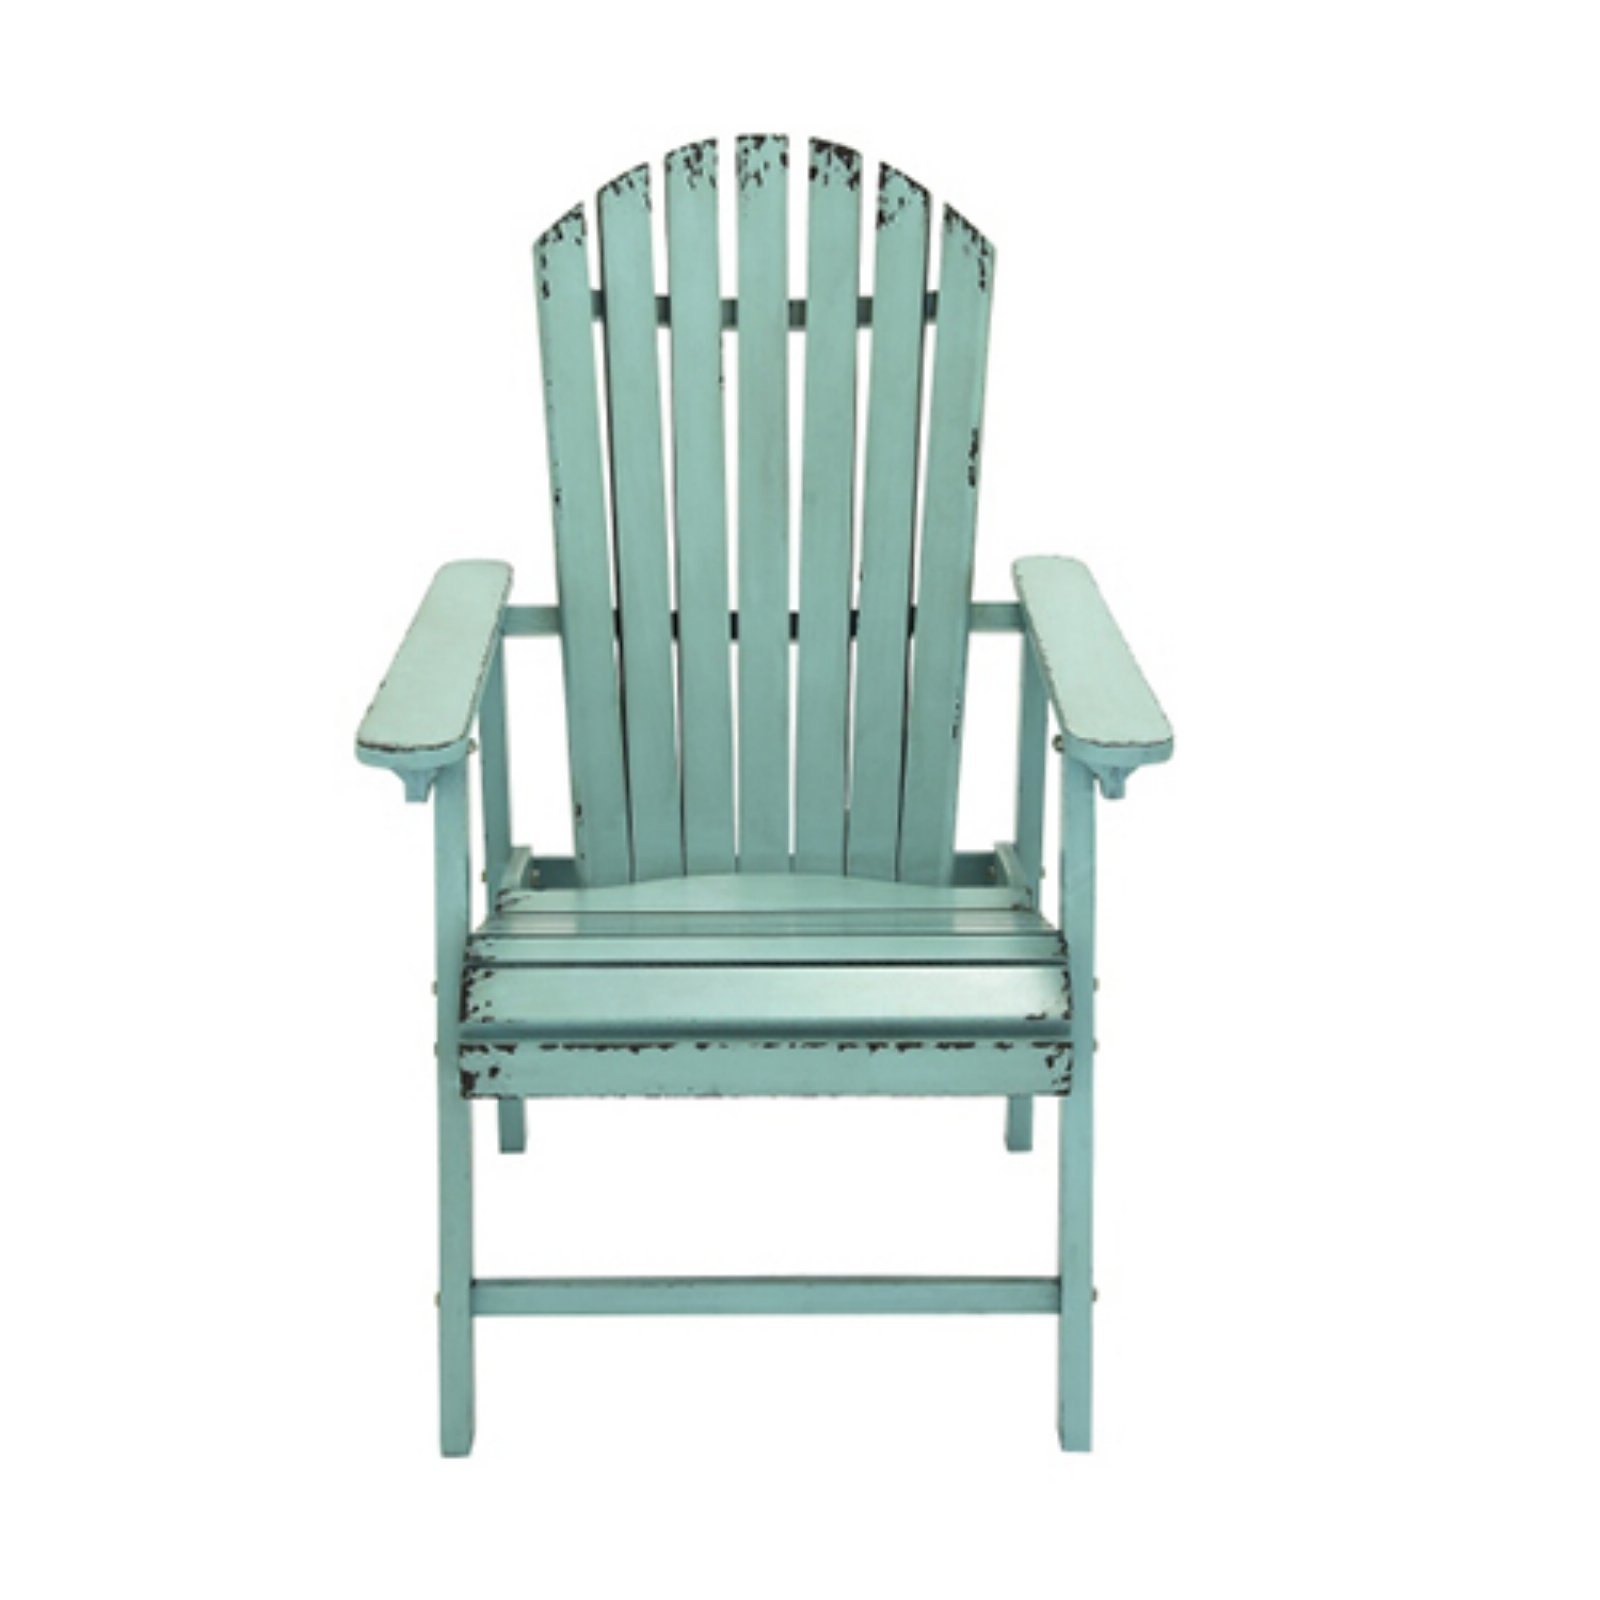 DecMode Rustic Country Distressed Adirondack Style Patio Chair